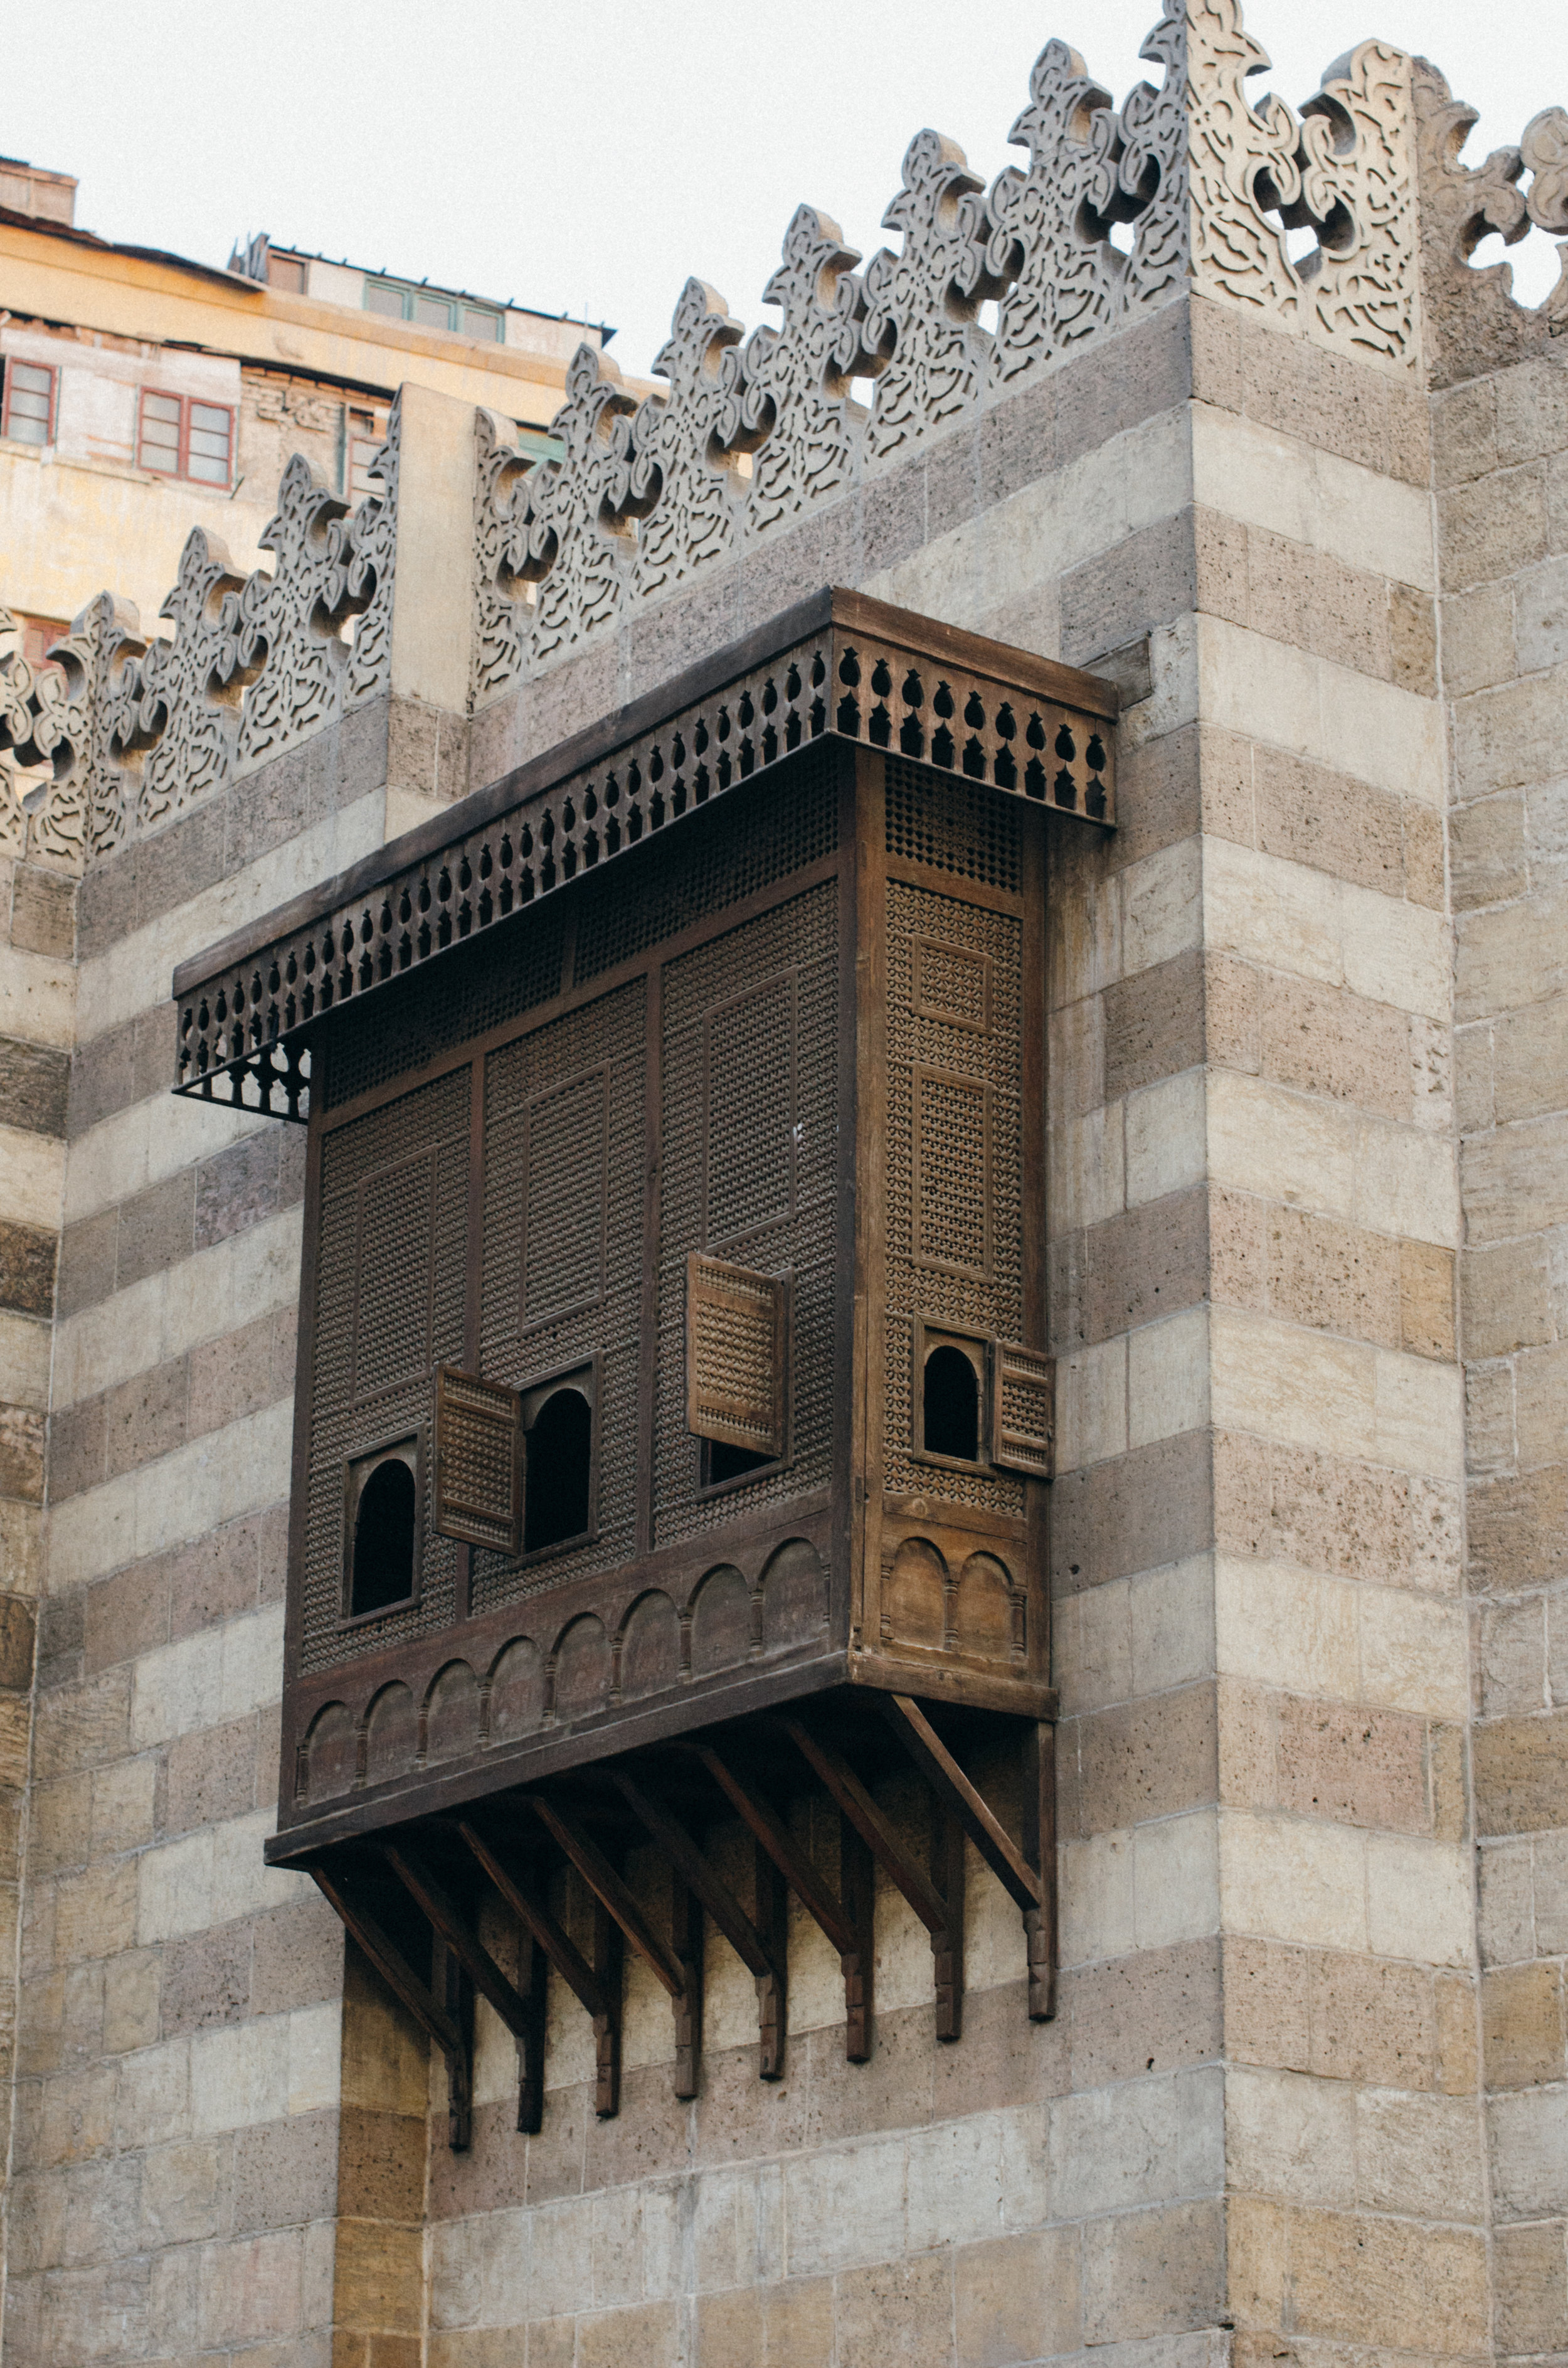 Classic windows like these are called Mashrabiya.  They allowed women to hear and see what was happening on the street while protecting their privacy